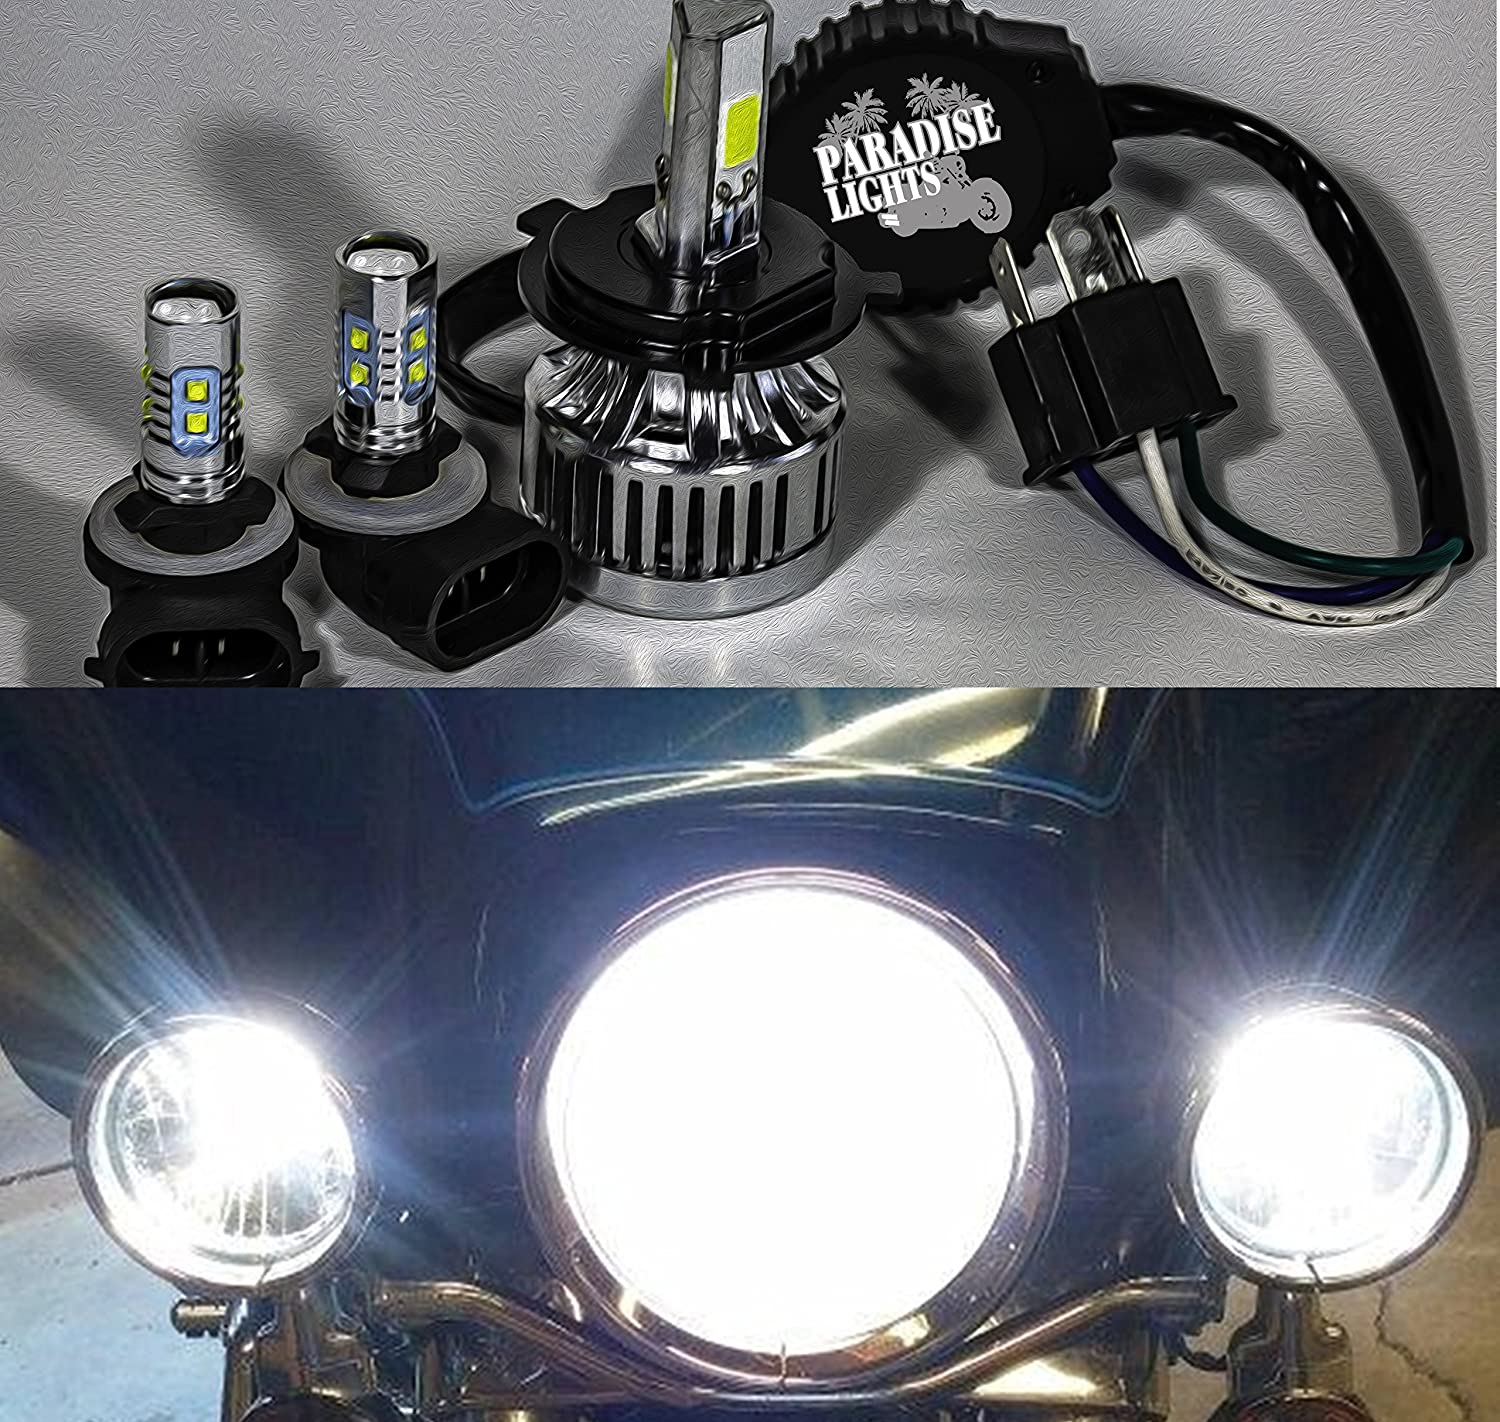 2006 And Up 3 Piece Super Bright Paradise Lights Us Ship Exciting Scout Crafts 1 Or 2 Led Headlamp Harley Electra Glide Ultra Classic Heritage Softail Flh Flhx Flhrs Flhtc Flhtcu Complete Bulb Set Automotive